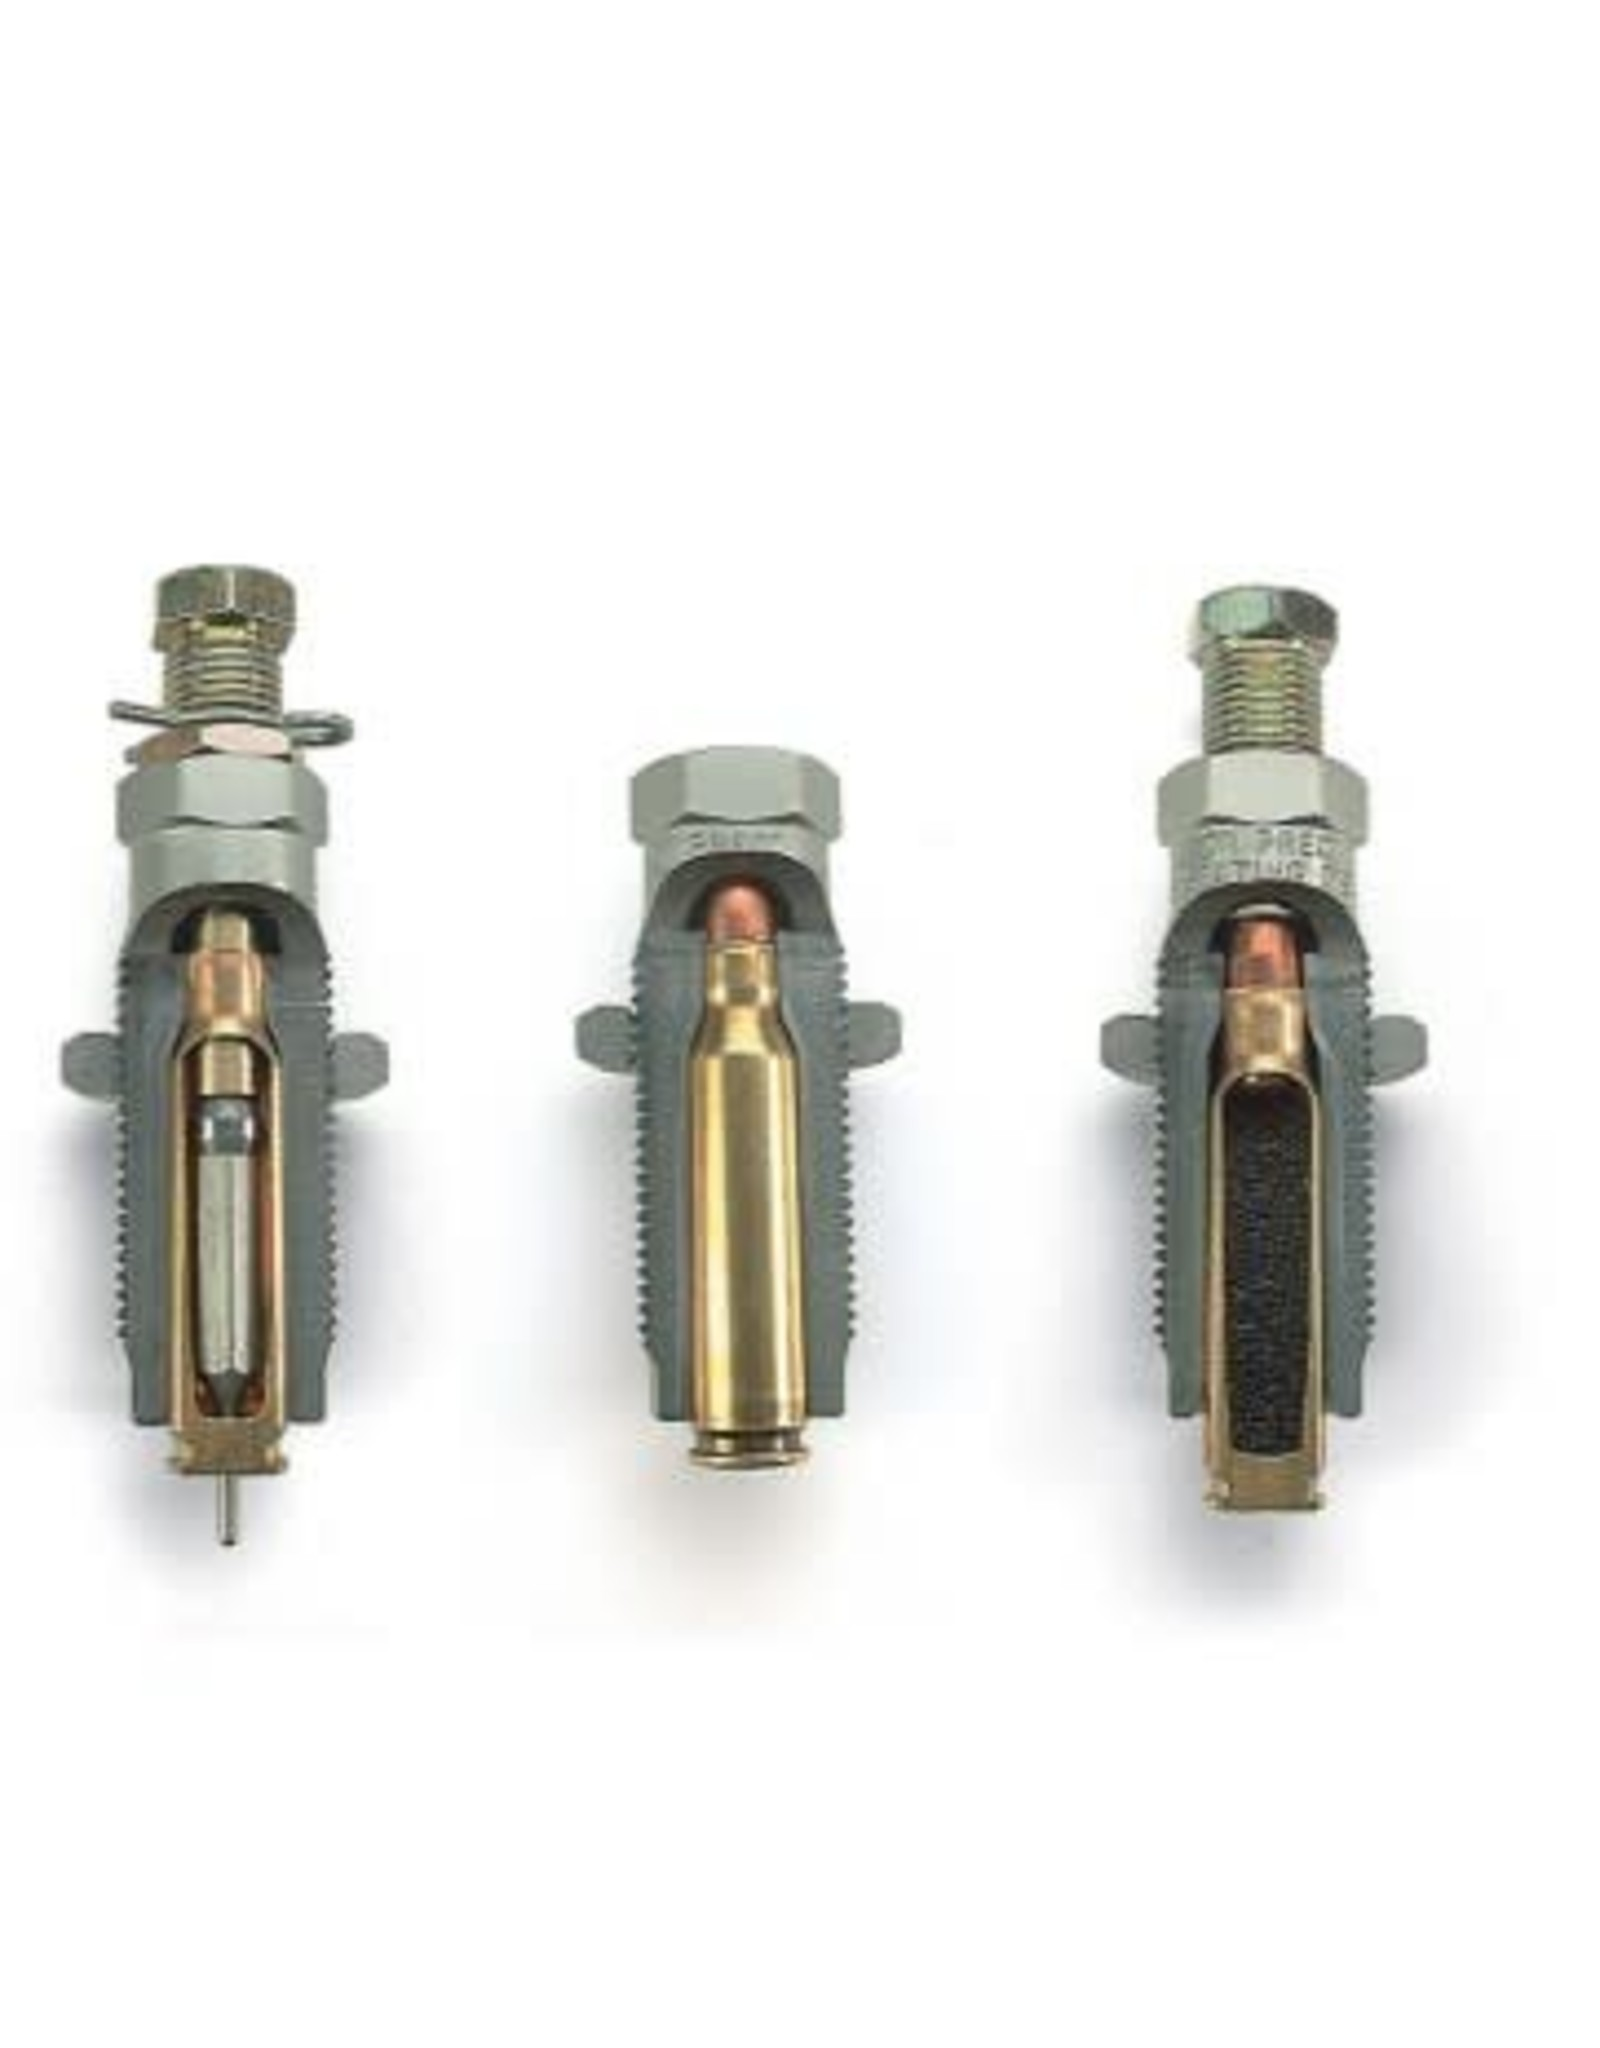 Dillon Precision Dillon Rifle Die Sets